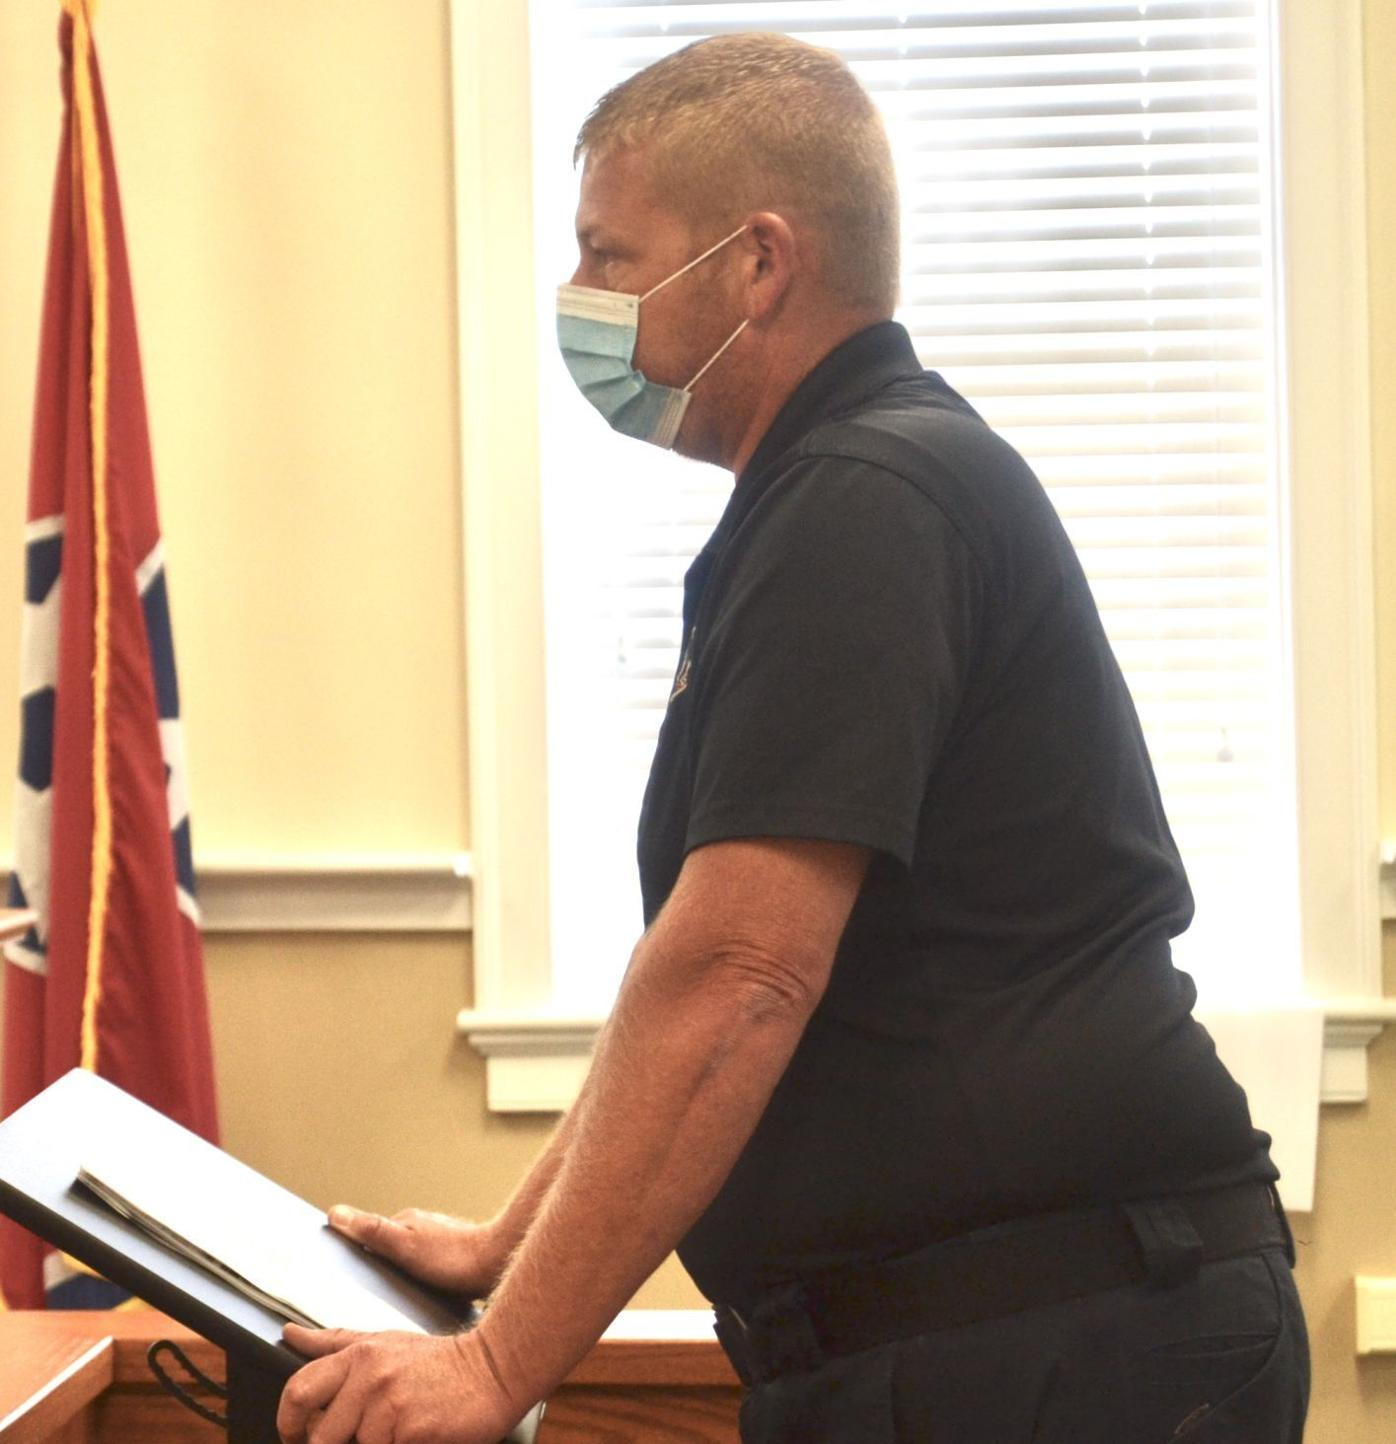 EMS Director says Ballad changes to Rogersville hospital will increase ambulance wait times